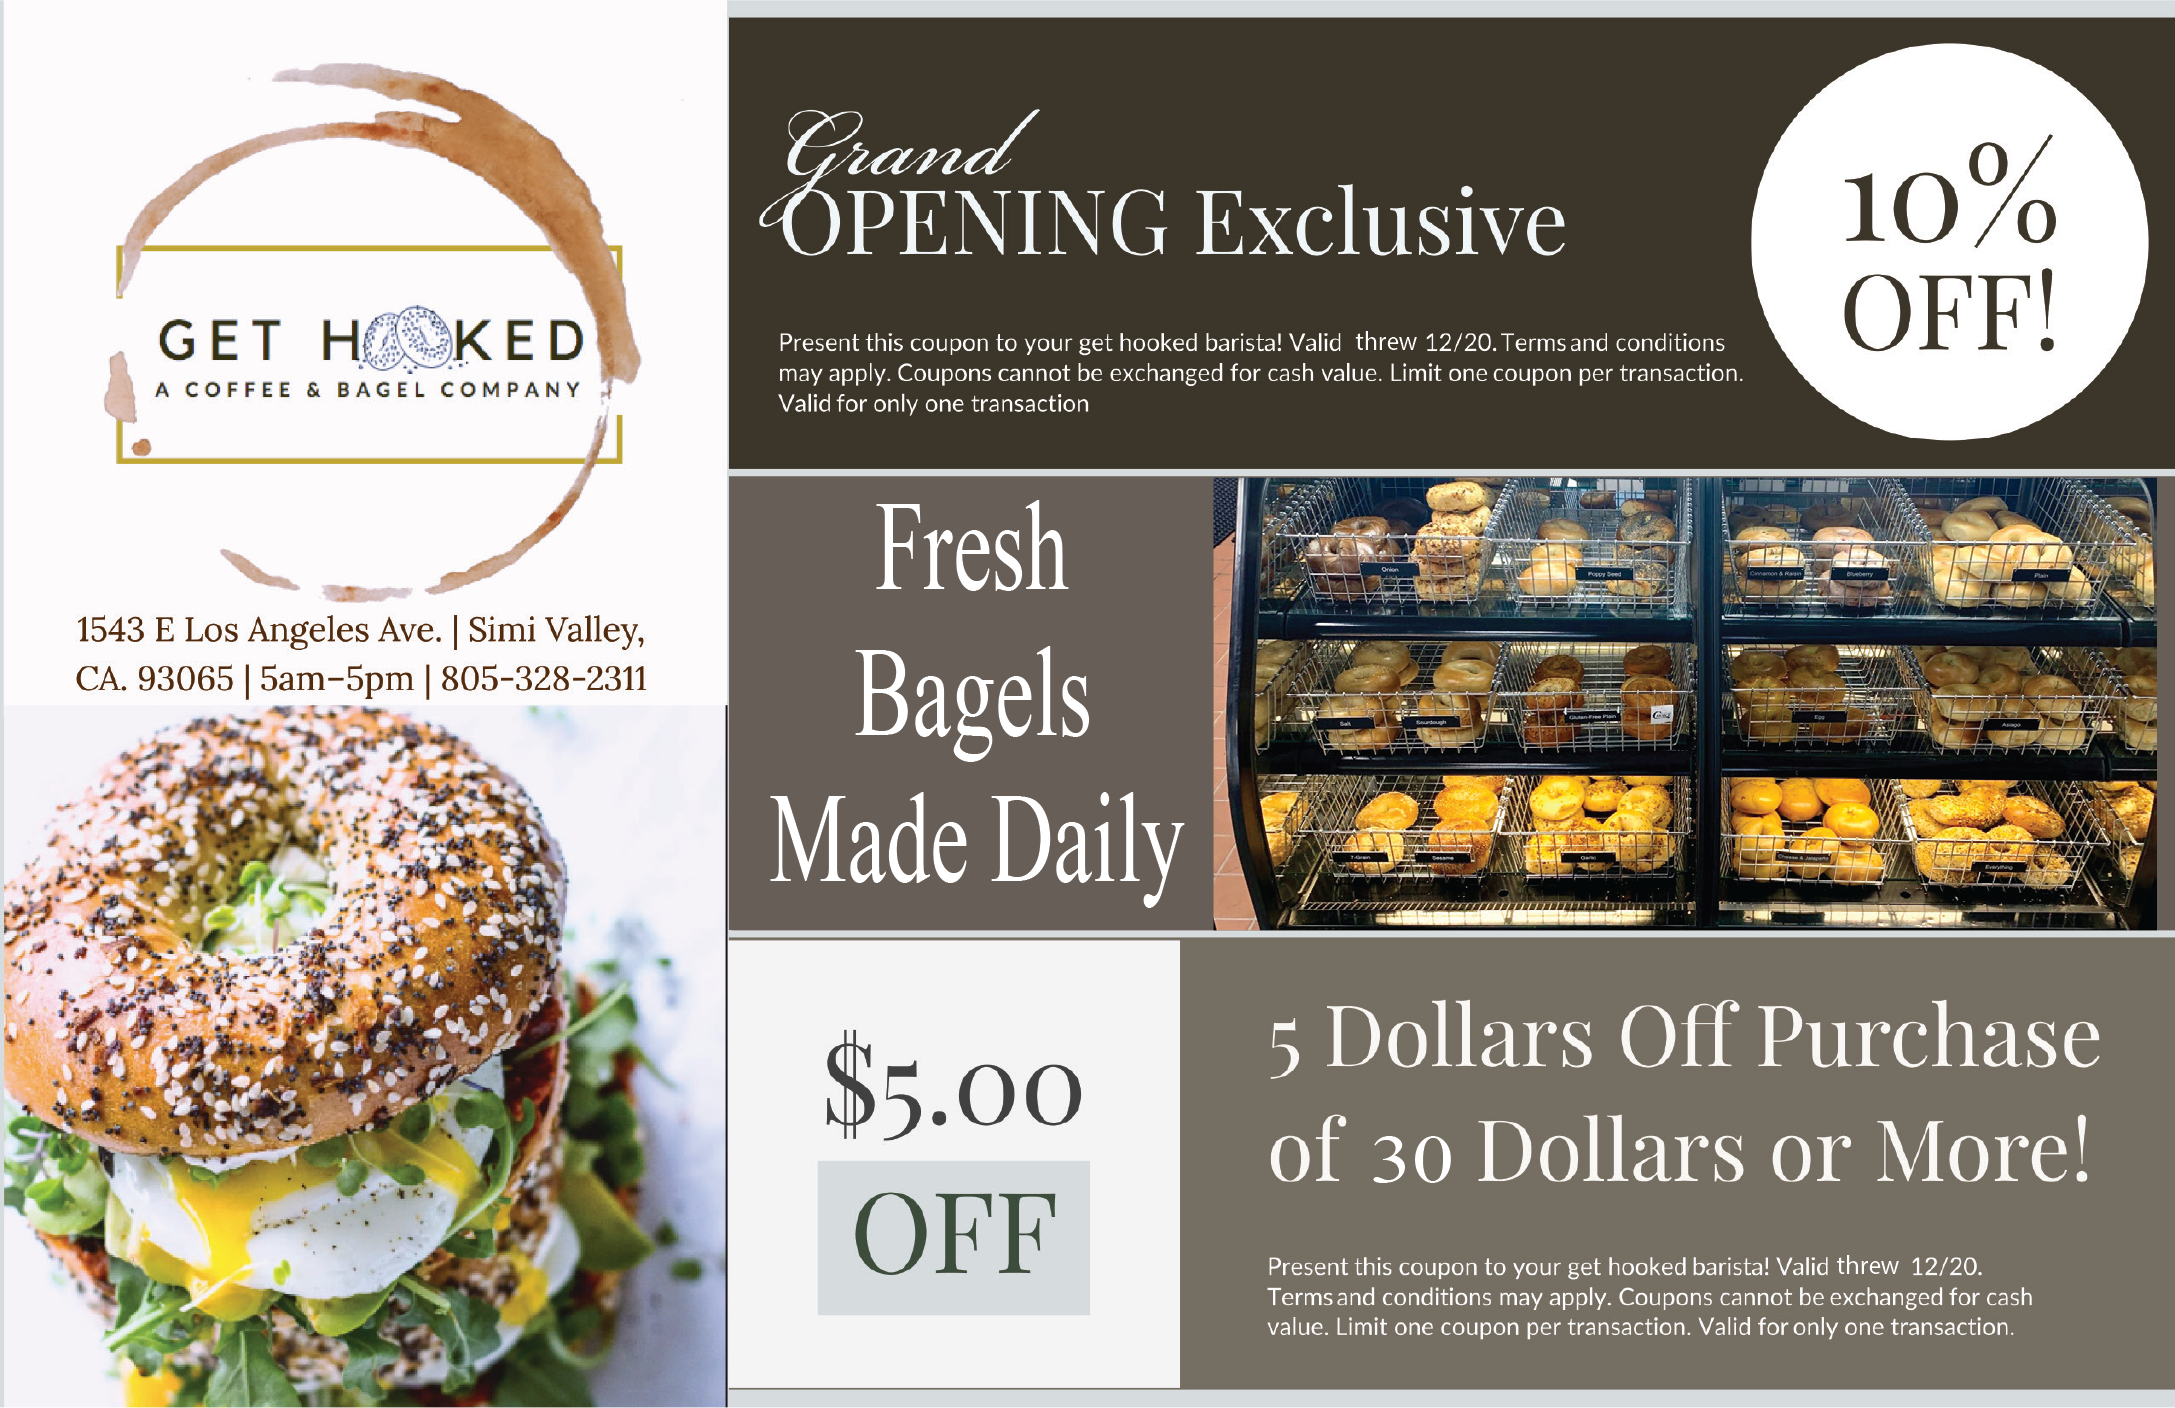 Grand Opening Exclusive